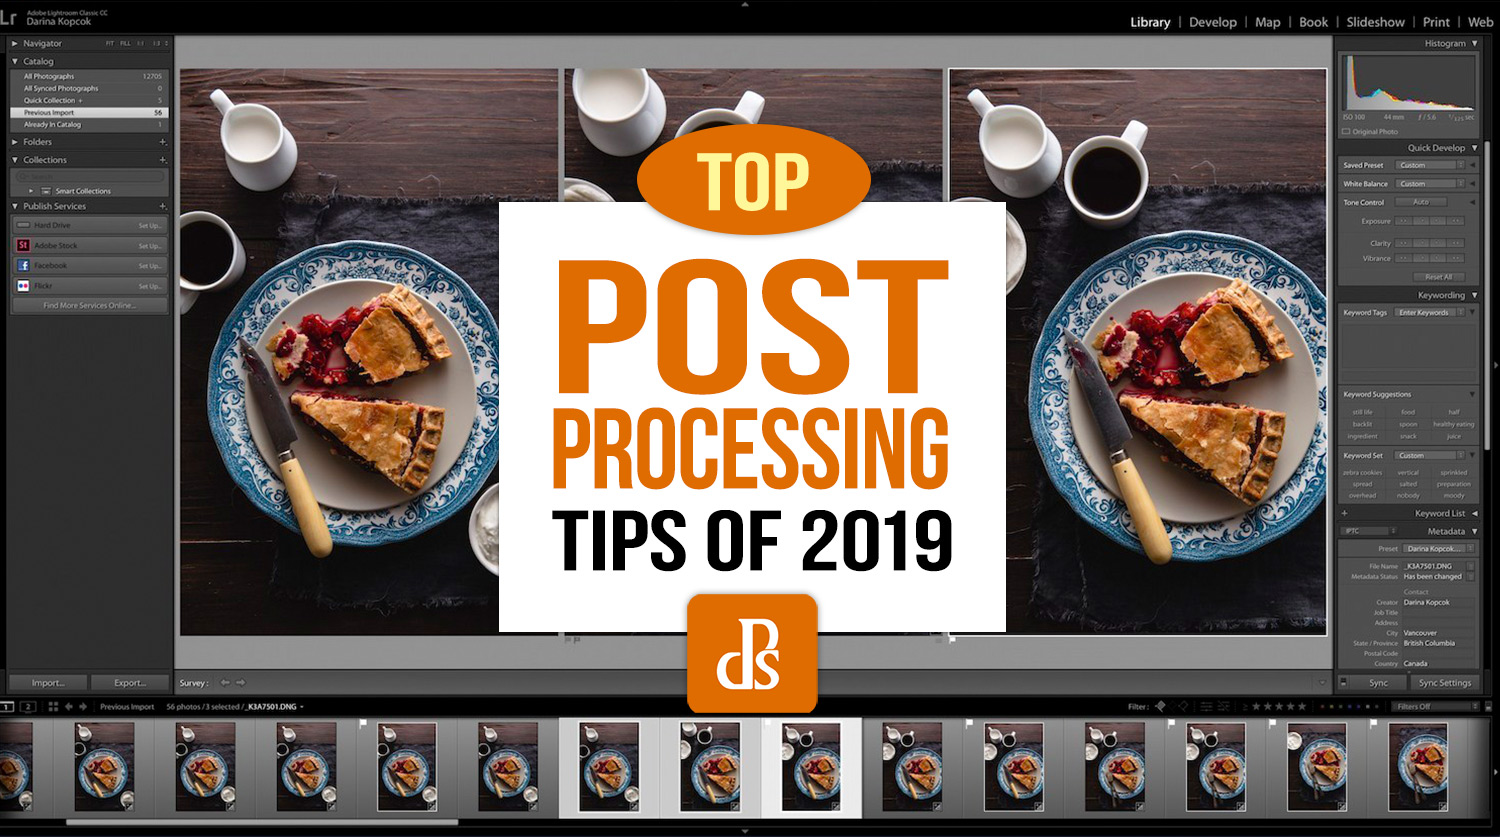 https://i0.wp.com/digital-photography-school.com/wp-content/uploads/2019/12/dps-top-post-processing-photography-tips-2018.jpg?resize=1500%2C837&ssl=1